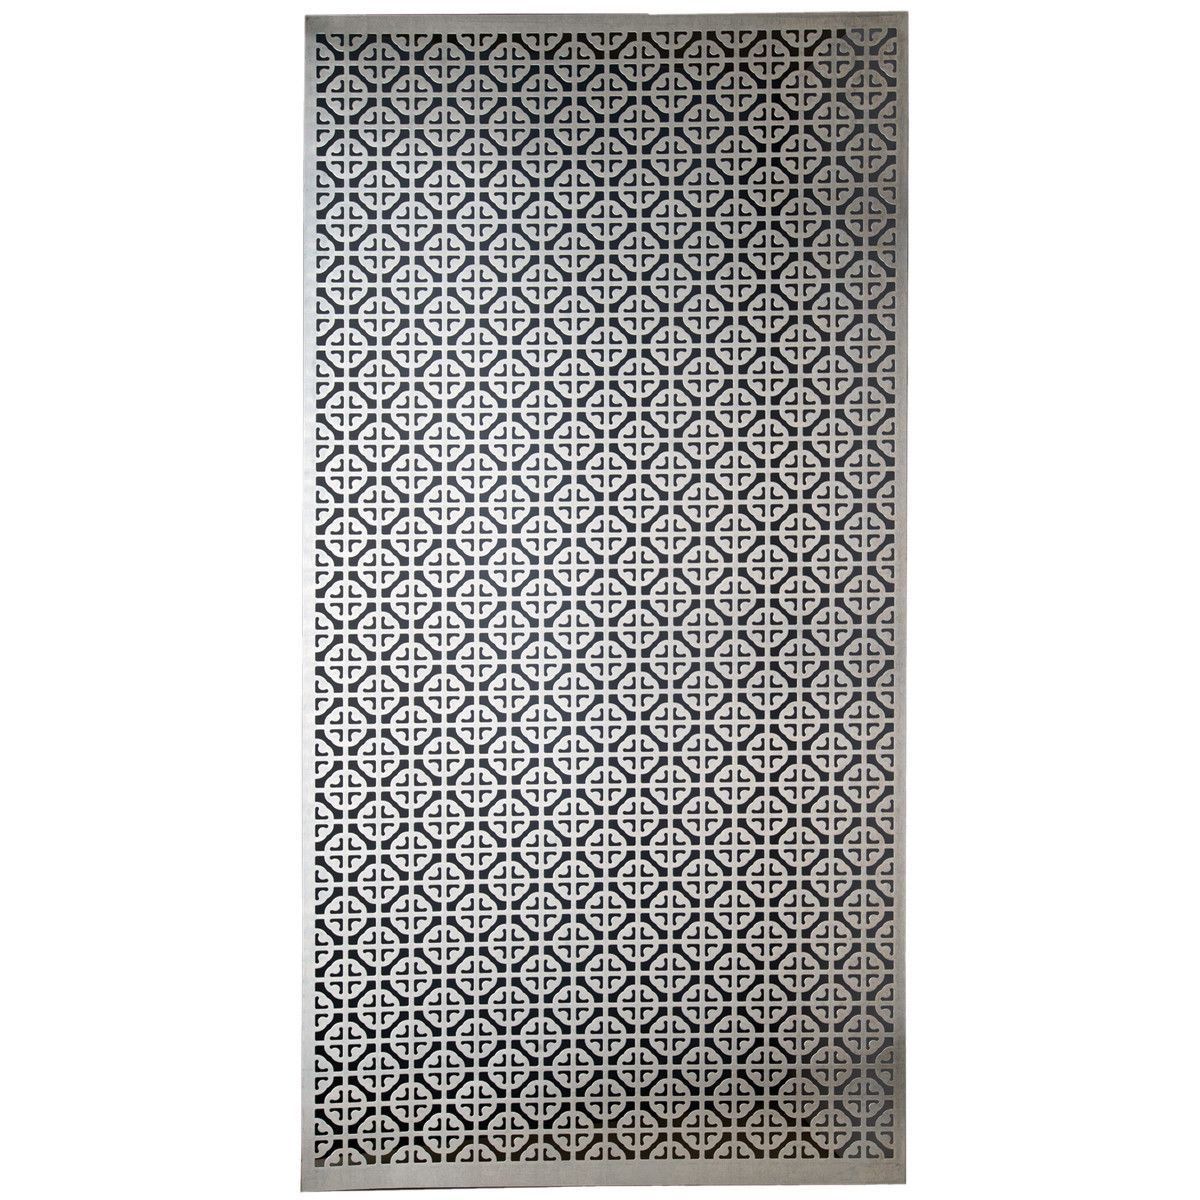 Aluminum Metal Sheet 12 X24 Mosaic Home Improvement Silver Color Perforated Metal